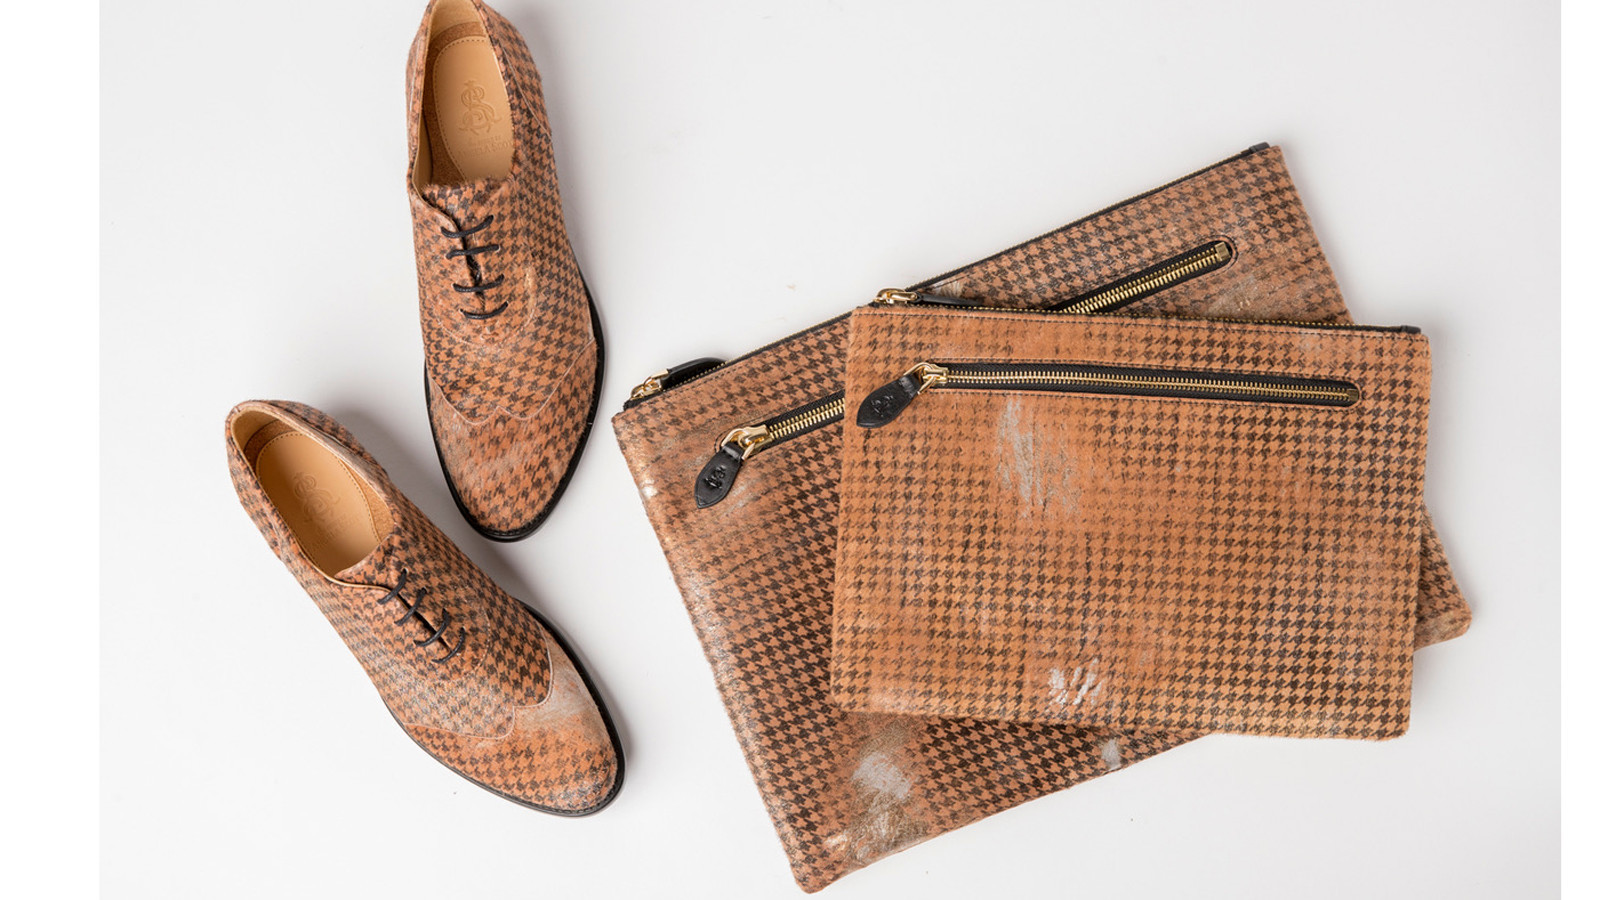 A bag line from Los Angeles brand the Office of Angela Scott joins the label's menswear-inspired women's shoes. Here are houndstooth print selections from the brand's fall/winter collection.